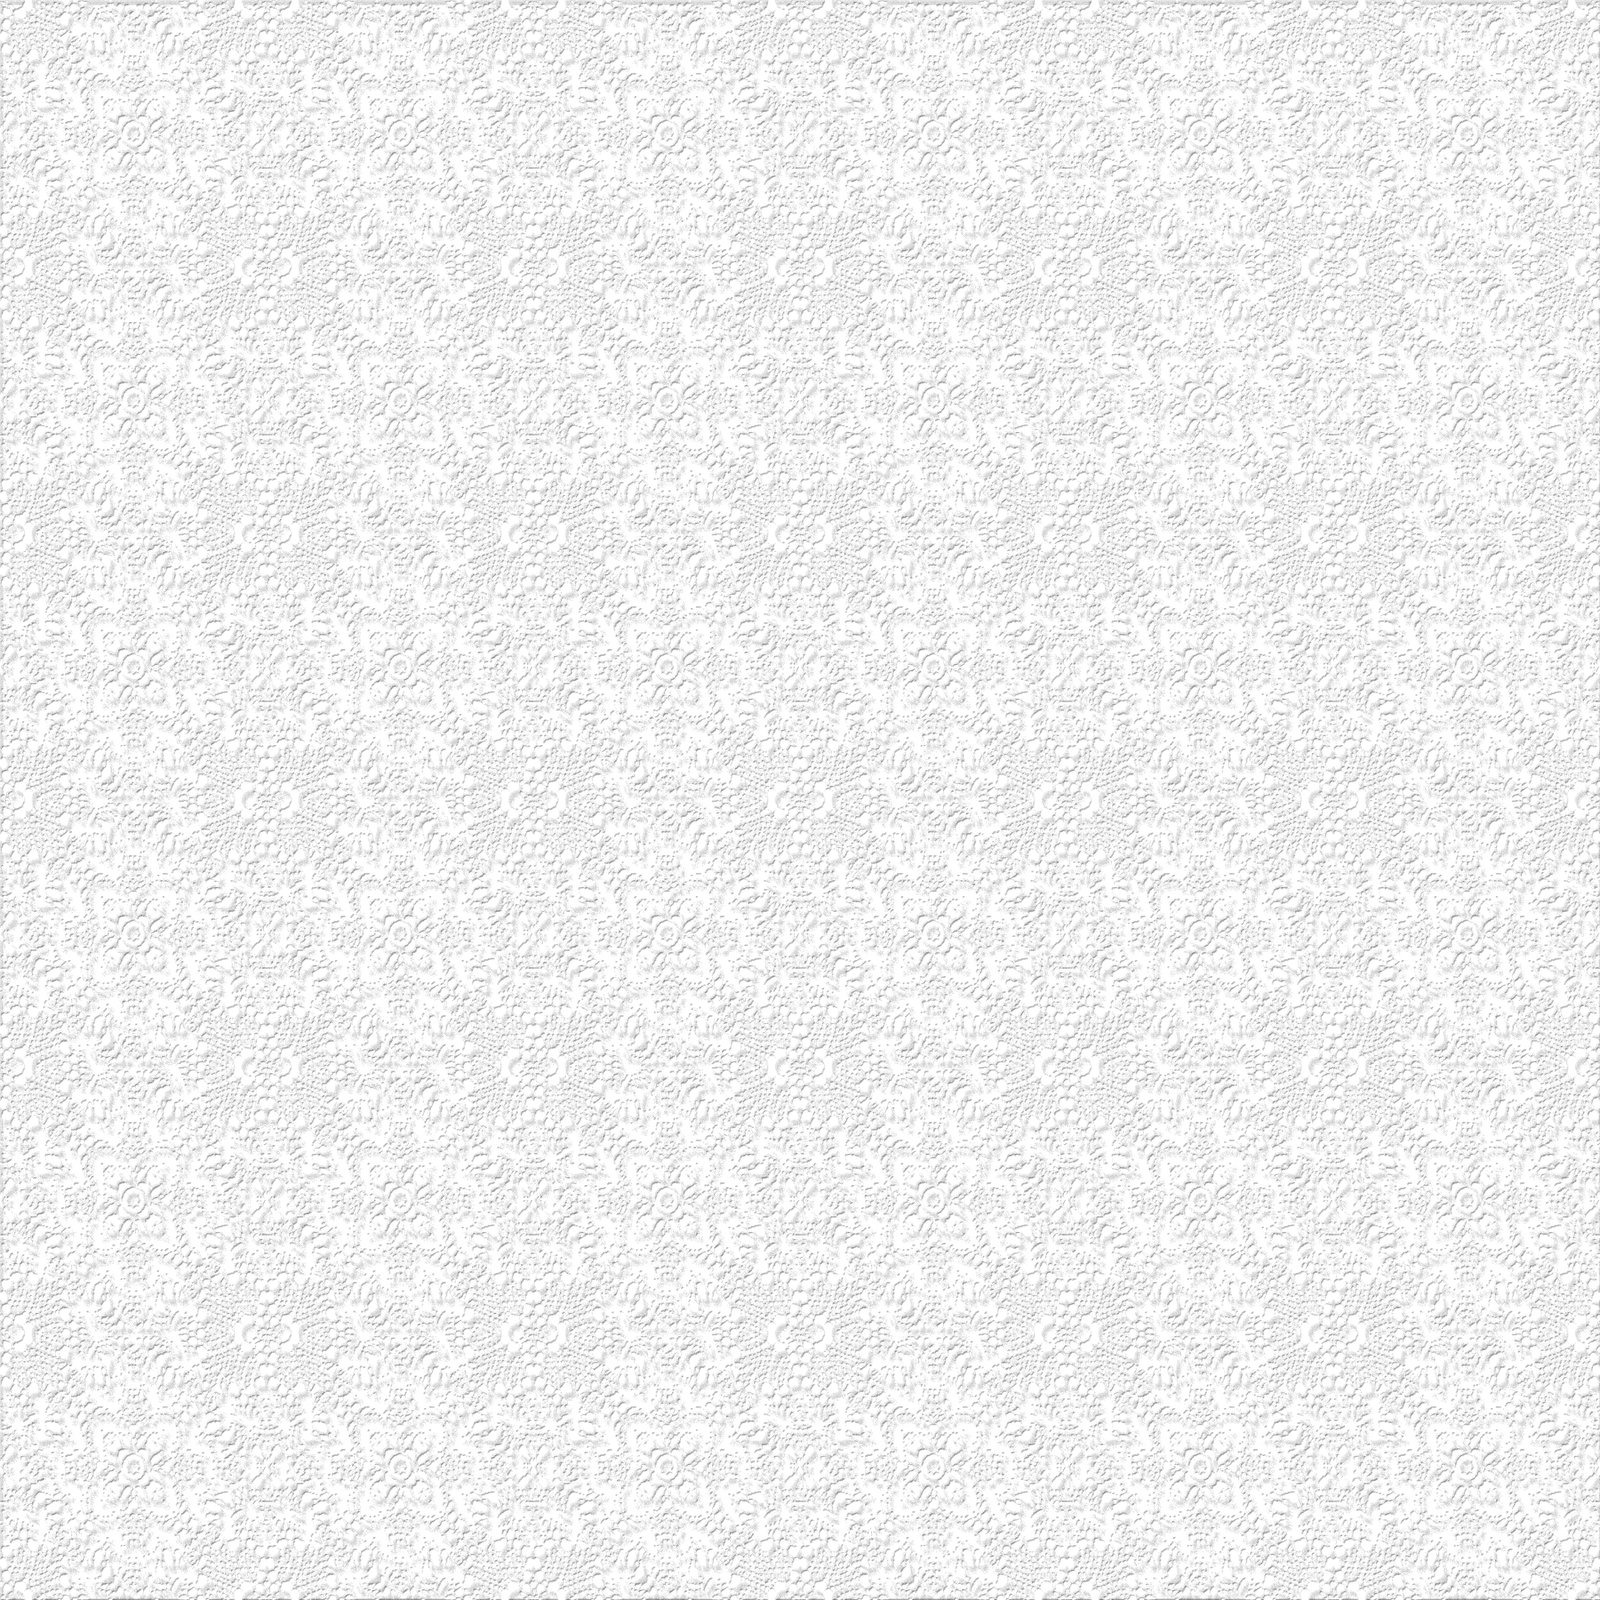 Simple Lace Patterns PNG - 44438